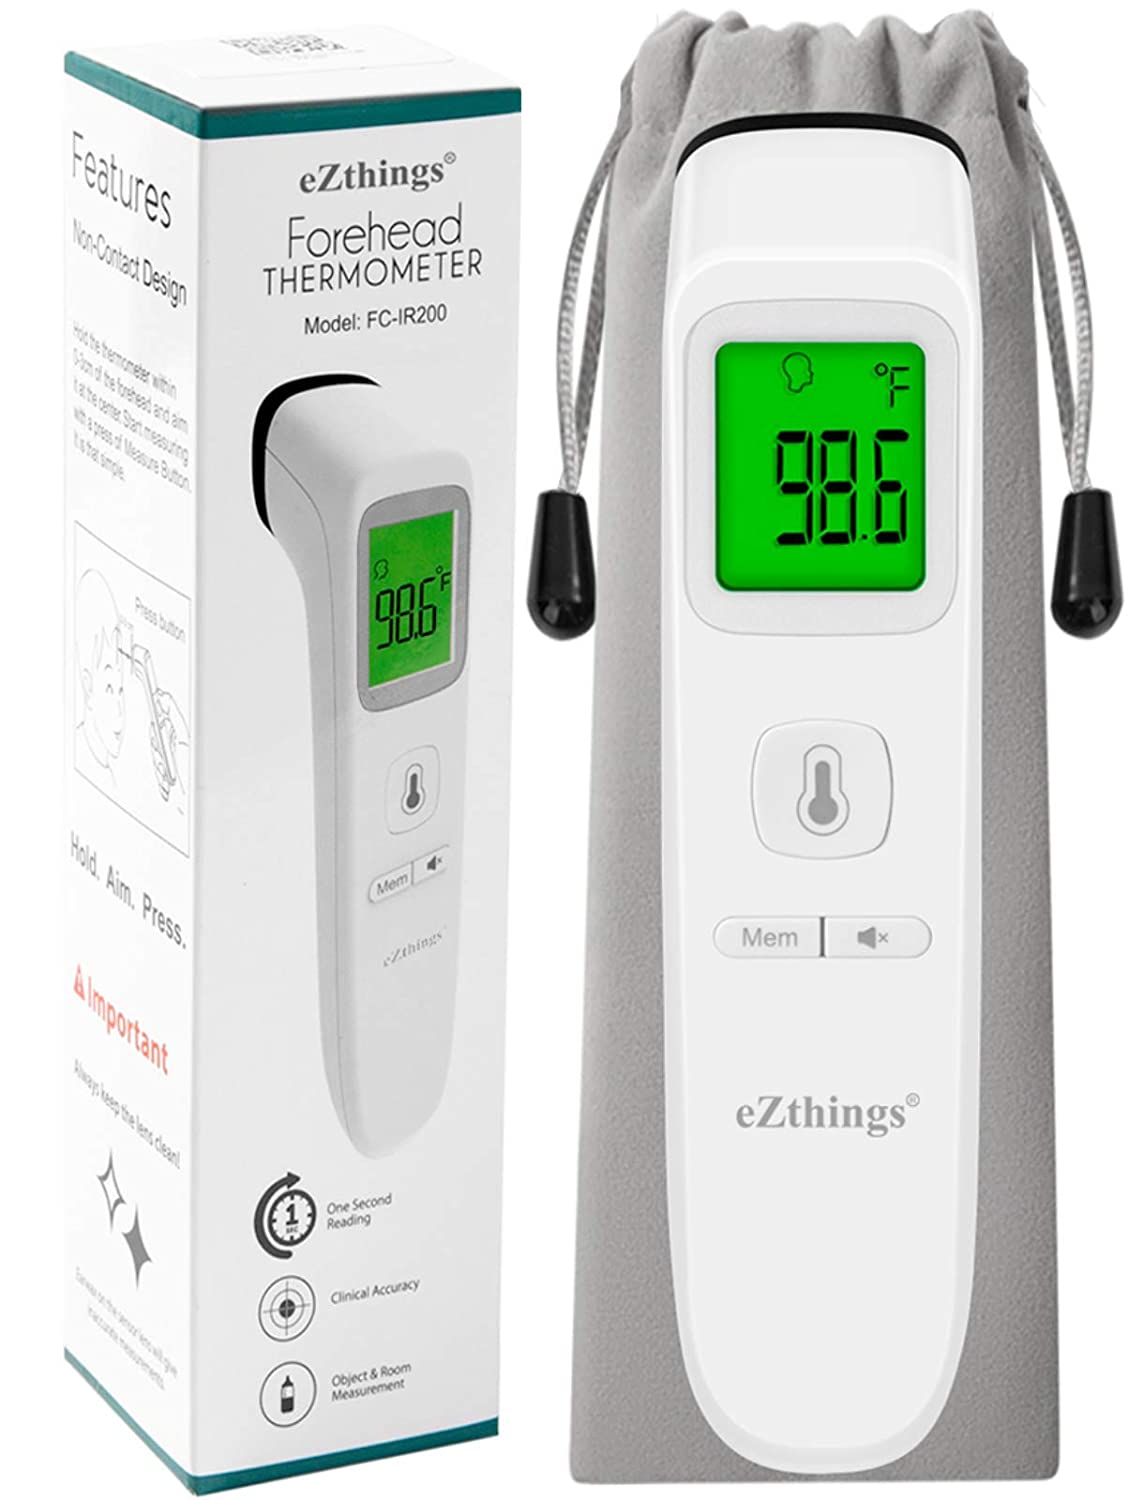 Hospitals eZthings Heavy Duty LCD Display Non-Contact Infrared Forehead Thermometer for Medical Offices White, Heavy Duty